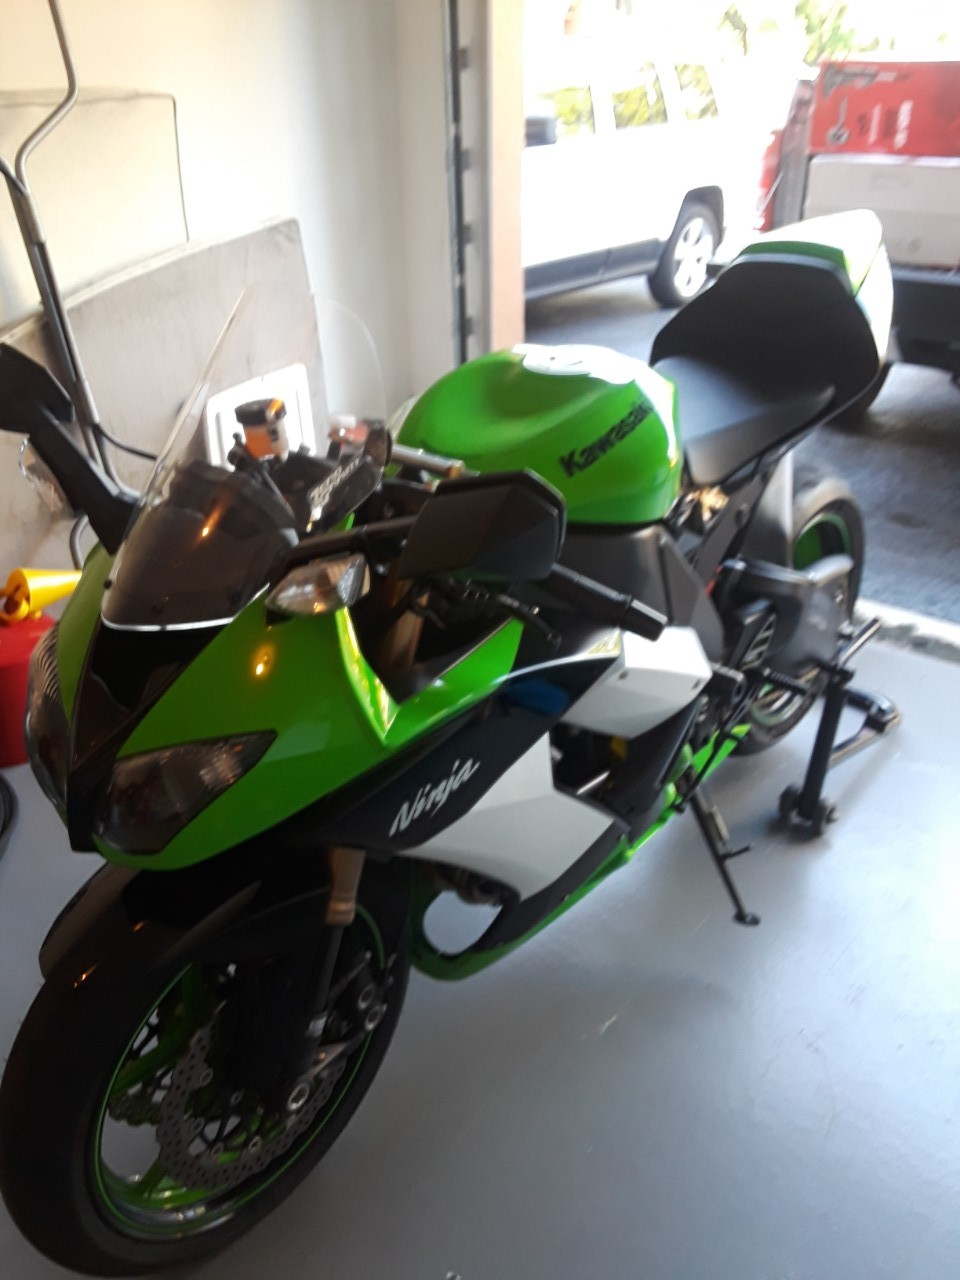 zx10r ZX-10R For Sale - Kawasaki Motorcycles - Cycle Trader